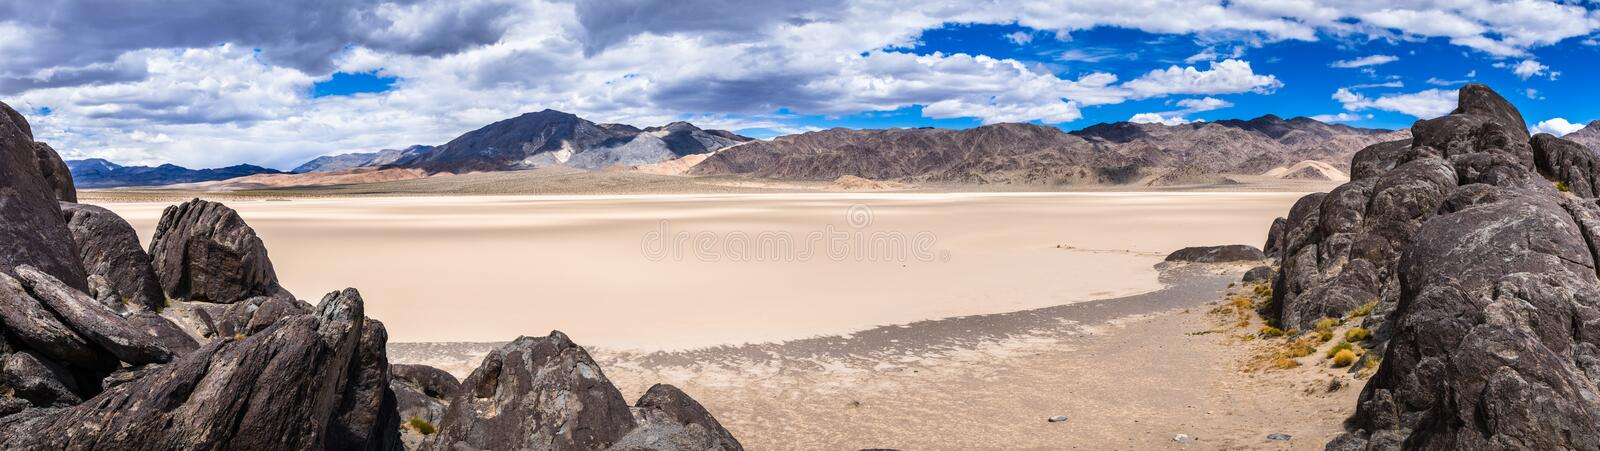 Panoramic view of the Racetrack Playa taken from the Grandstand, Death Valley National Park, California royalty free stock images